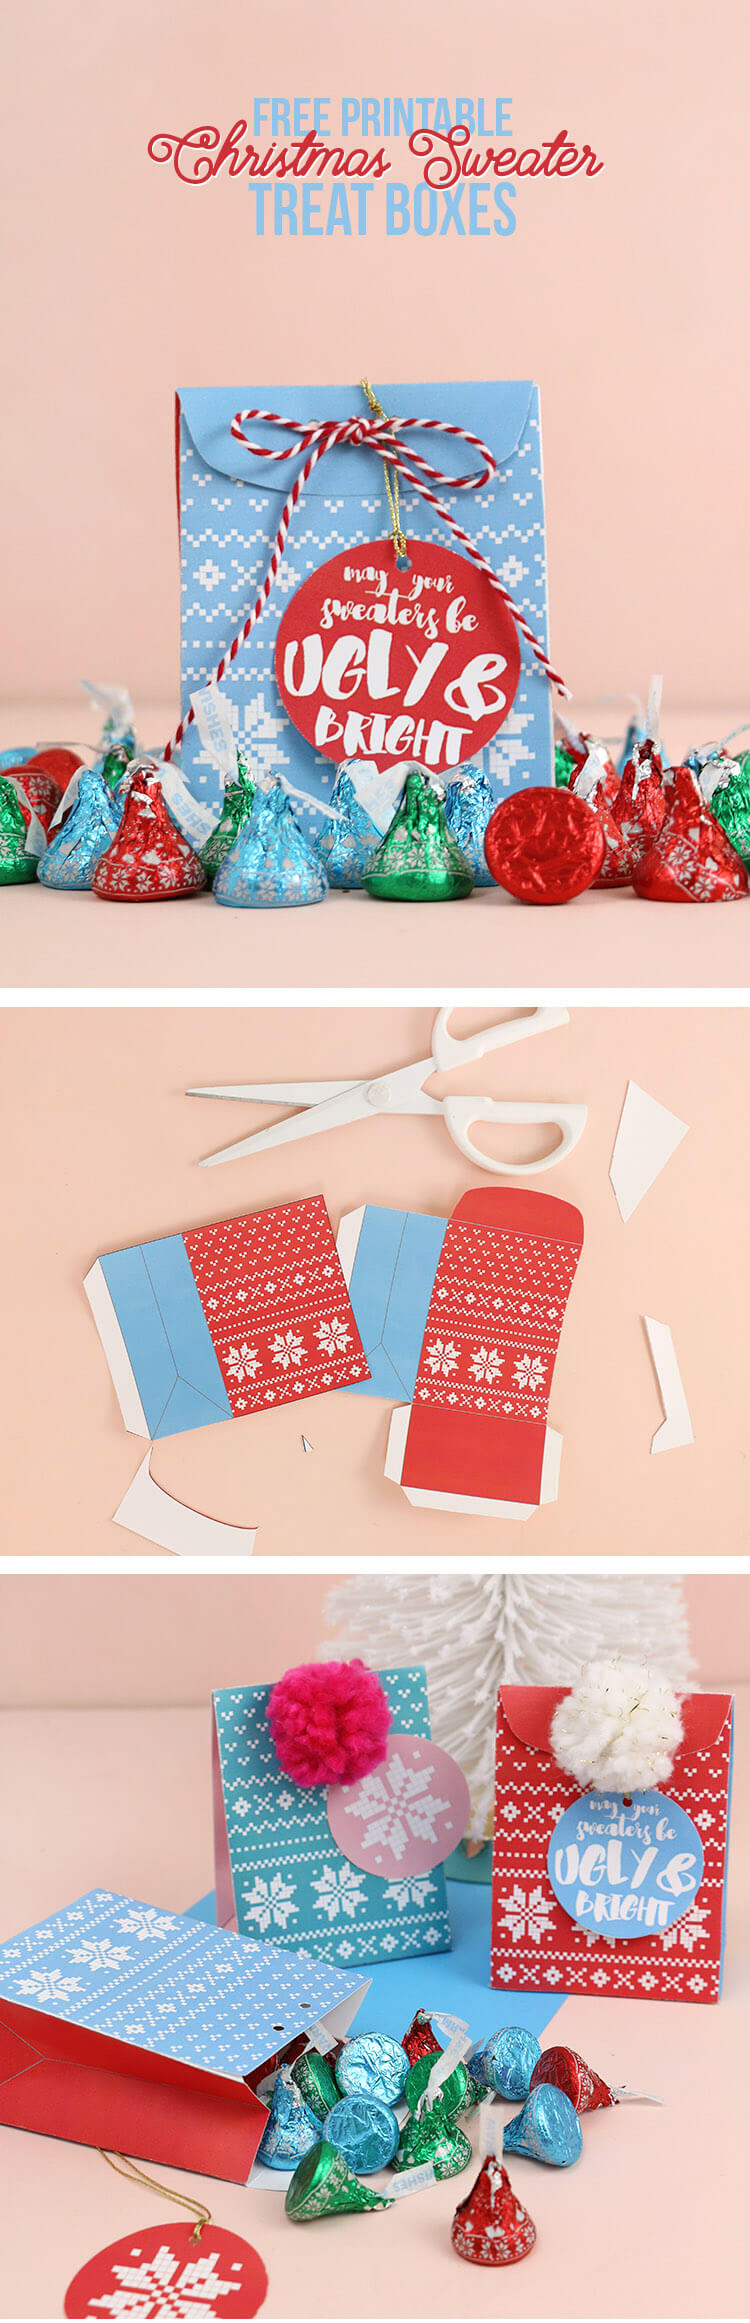 Free Printable Christmas Sweater Treat Box - just print and fill with treats! Perfect party favor for an Ugly Sweater party